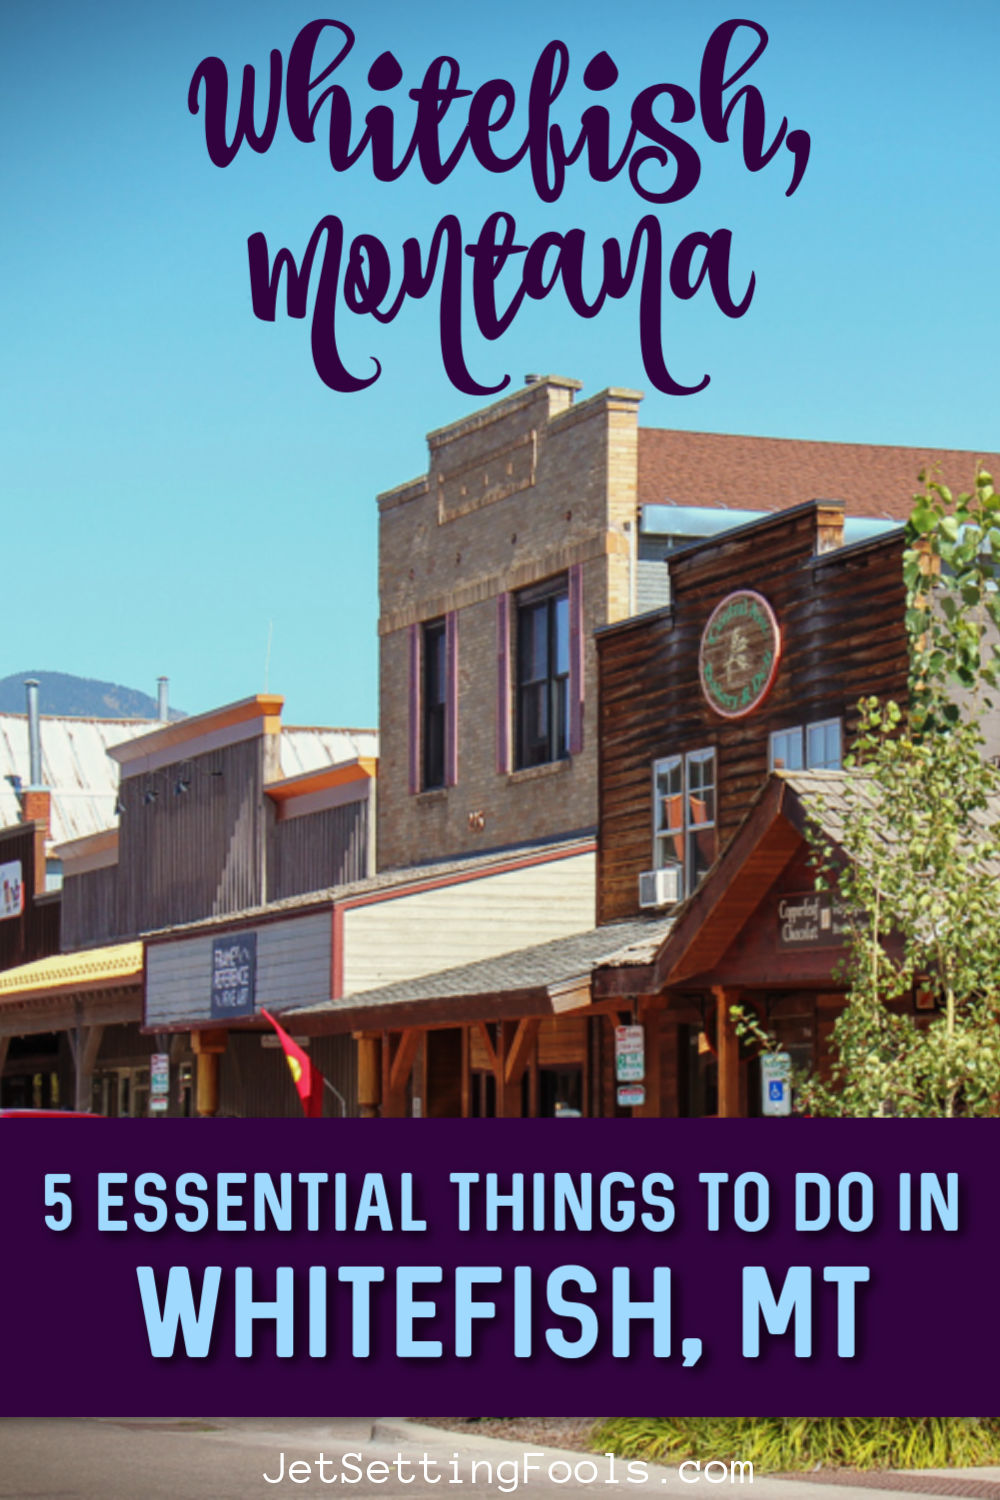 Essential Things To Do in Whitefish, Montana by JetSettingFools.com